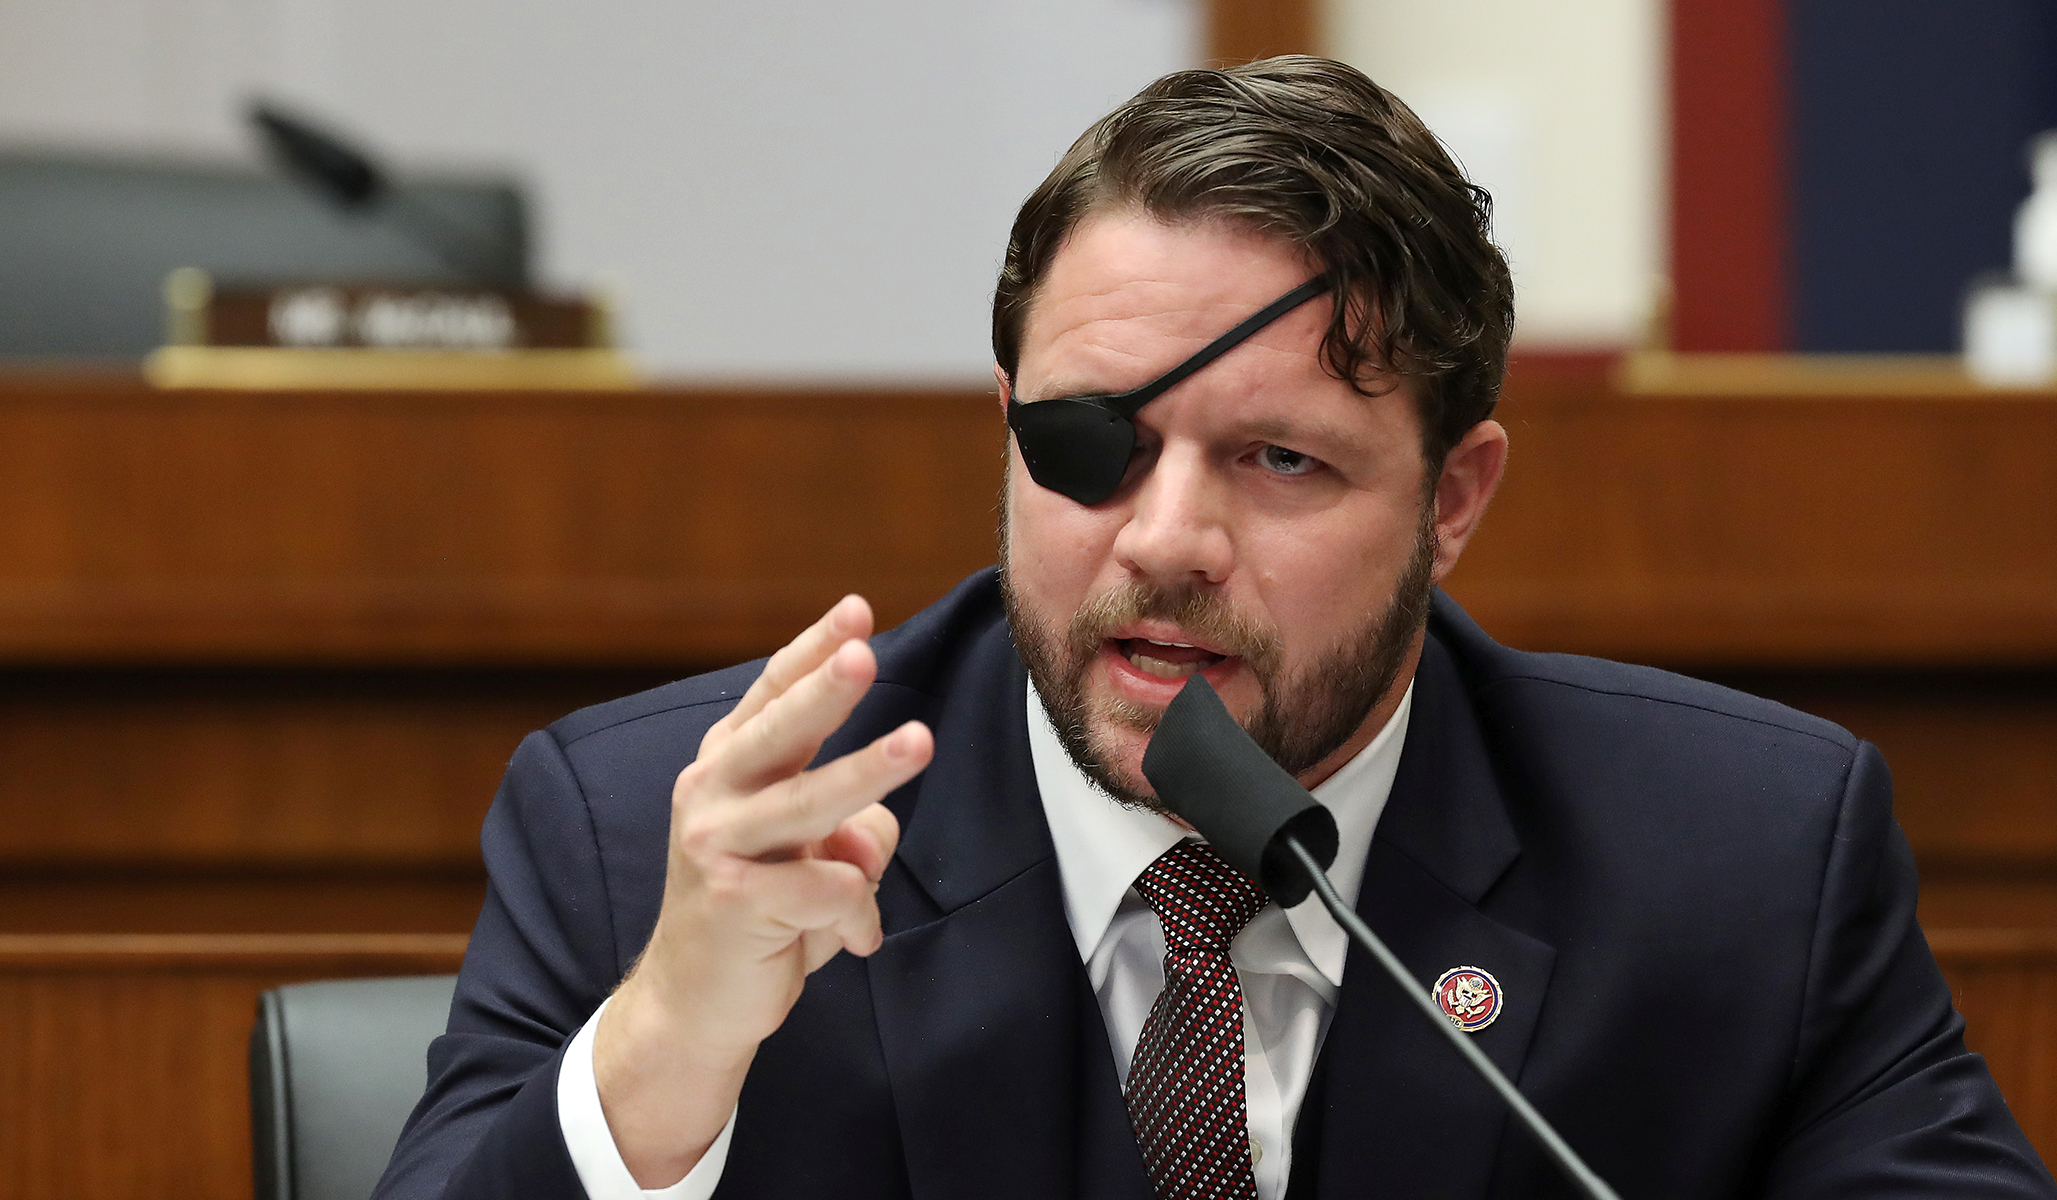 Dan Crenshaw: Texas Representative Fined $5000 after Bypassing Capitol Security